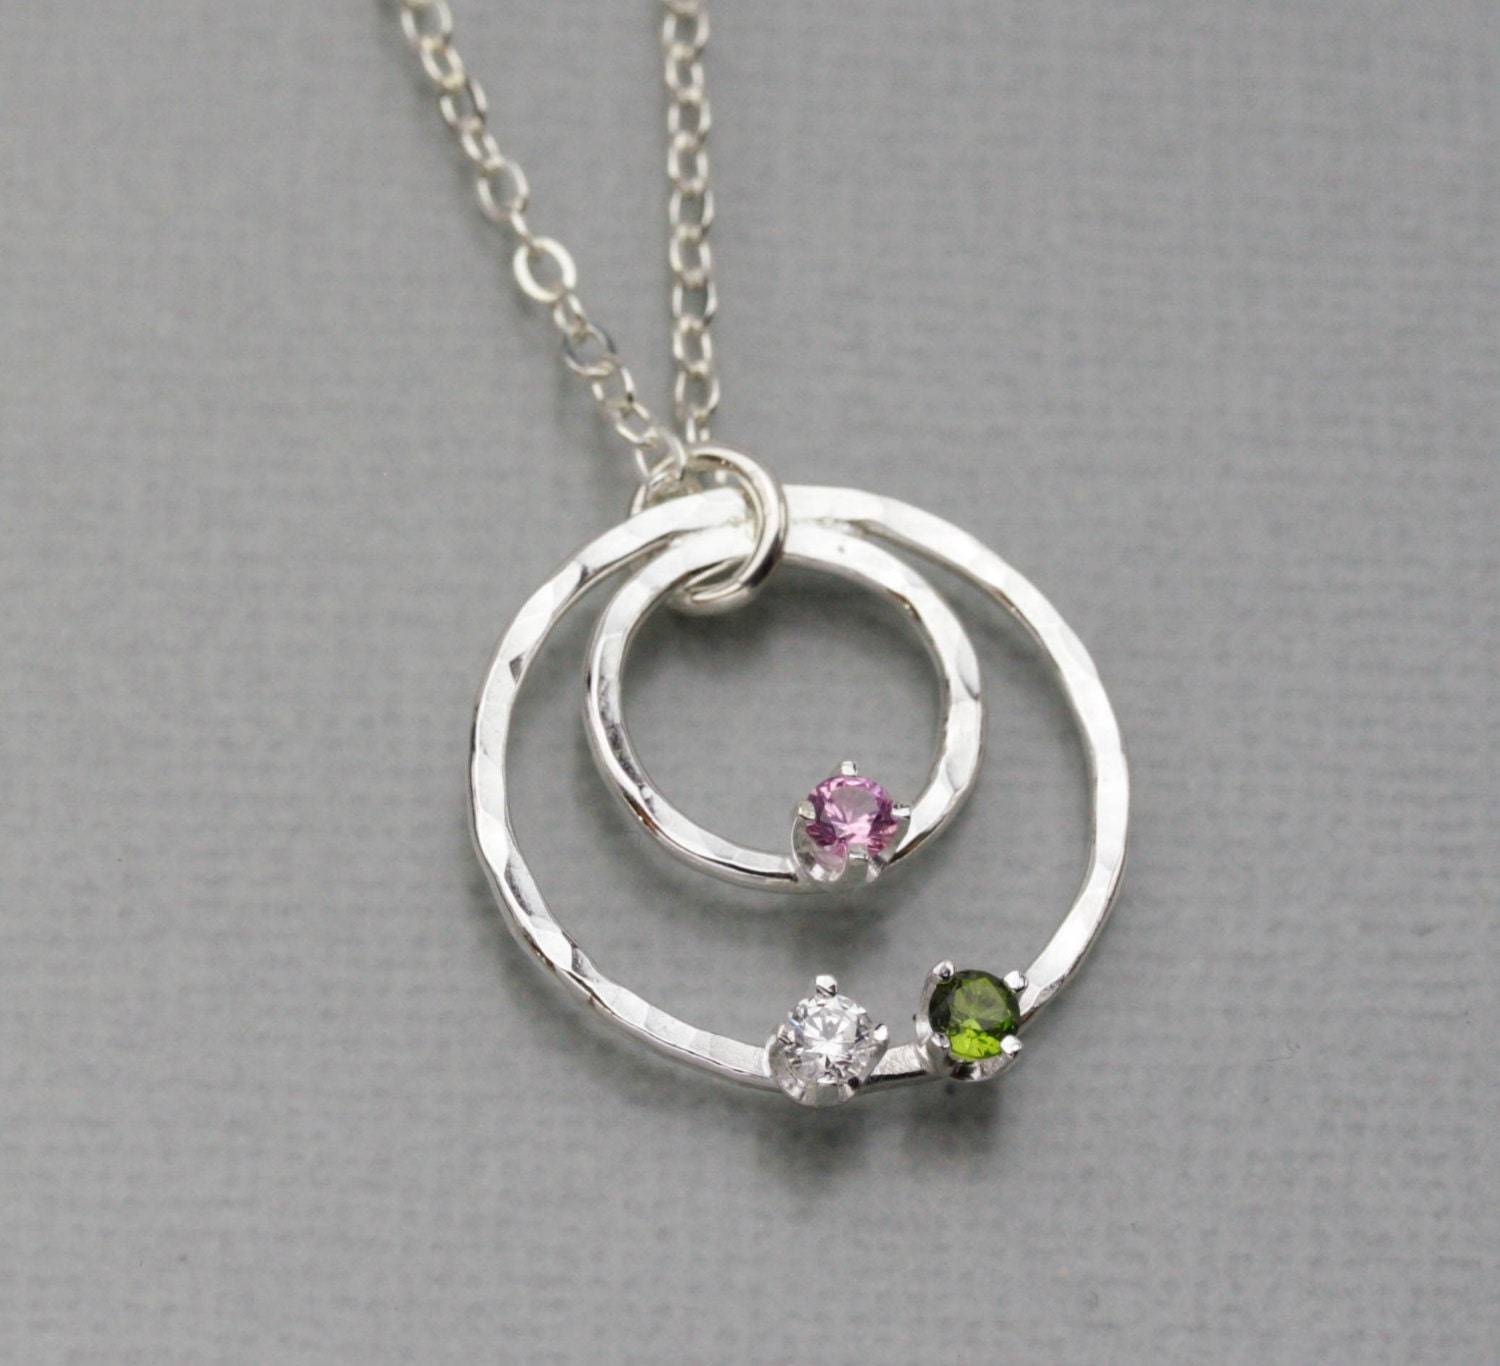 birthstone necklaces that you can add to